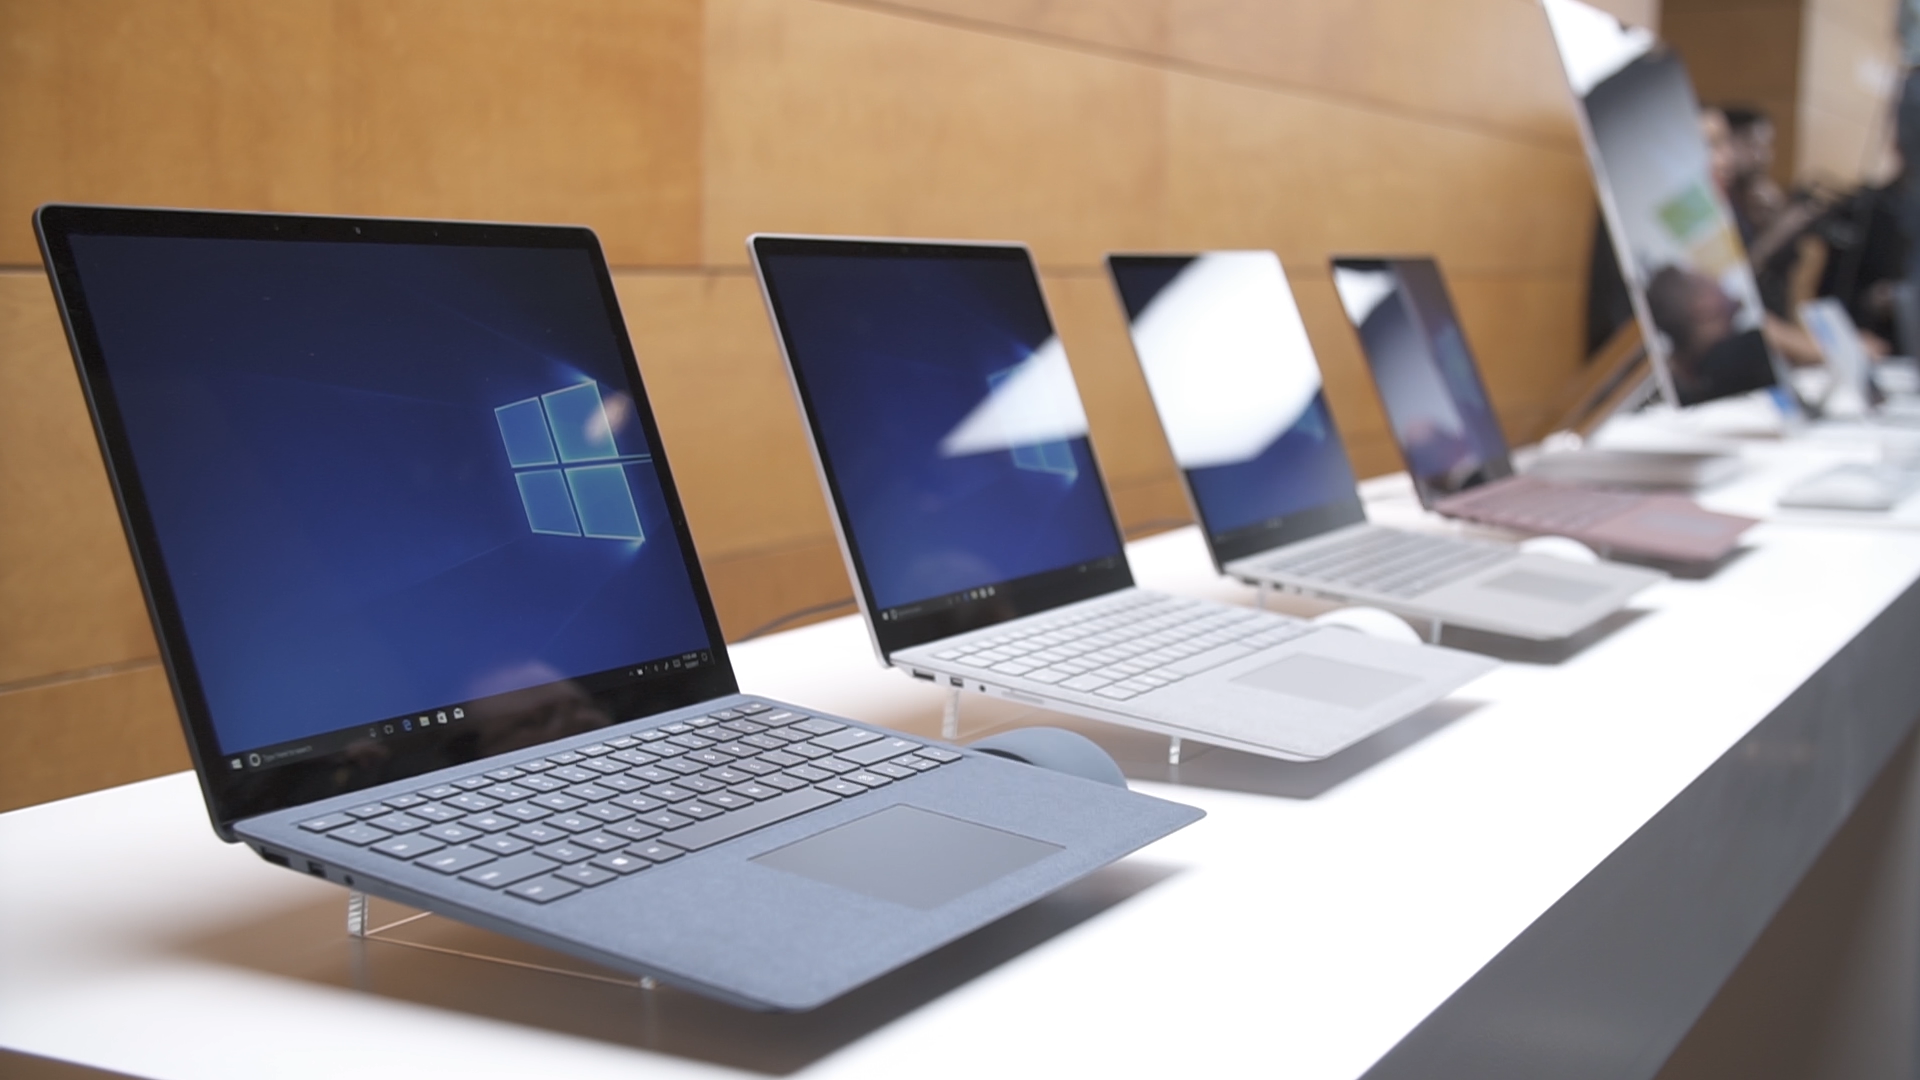 Windows 10 S explained: Features, release date, laptops